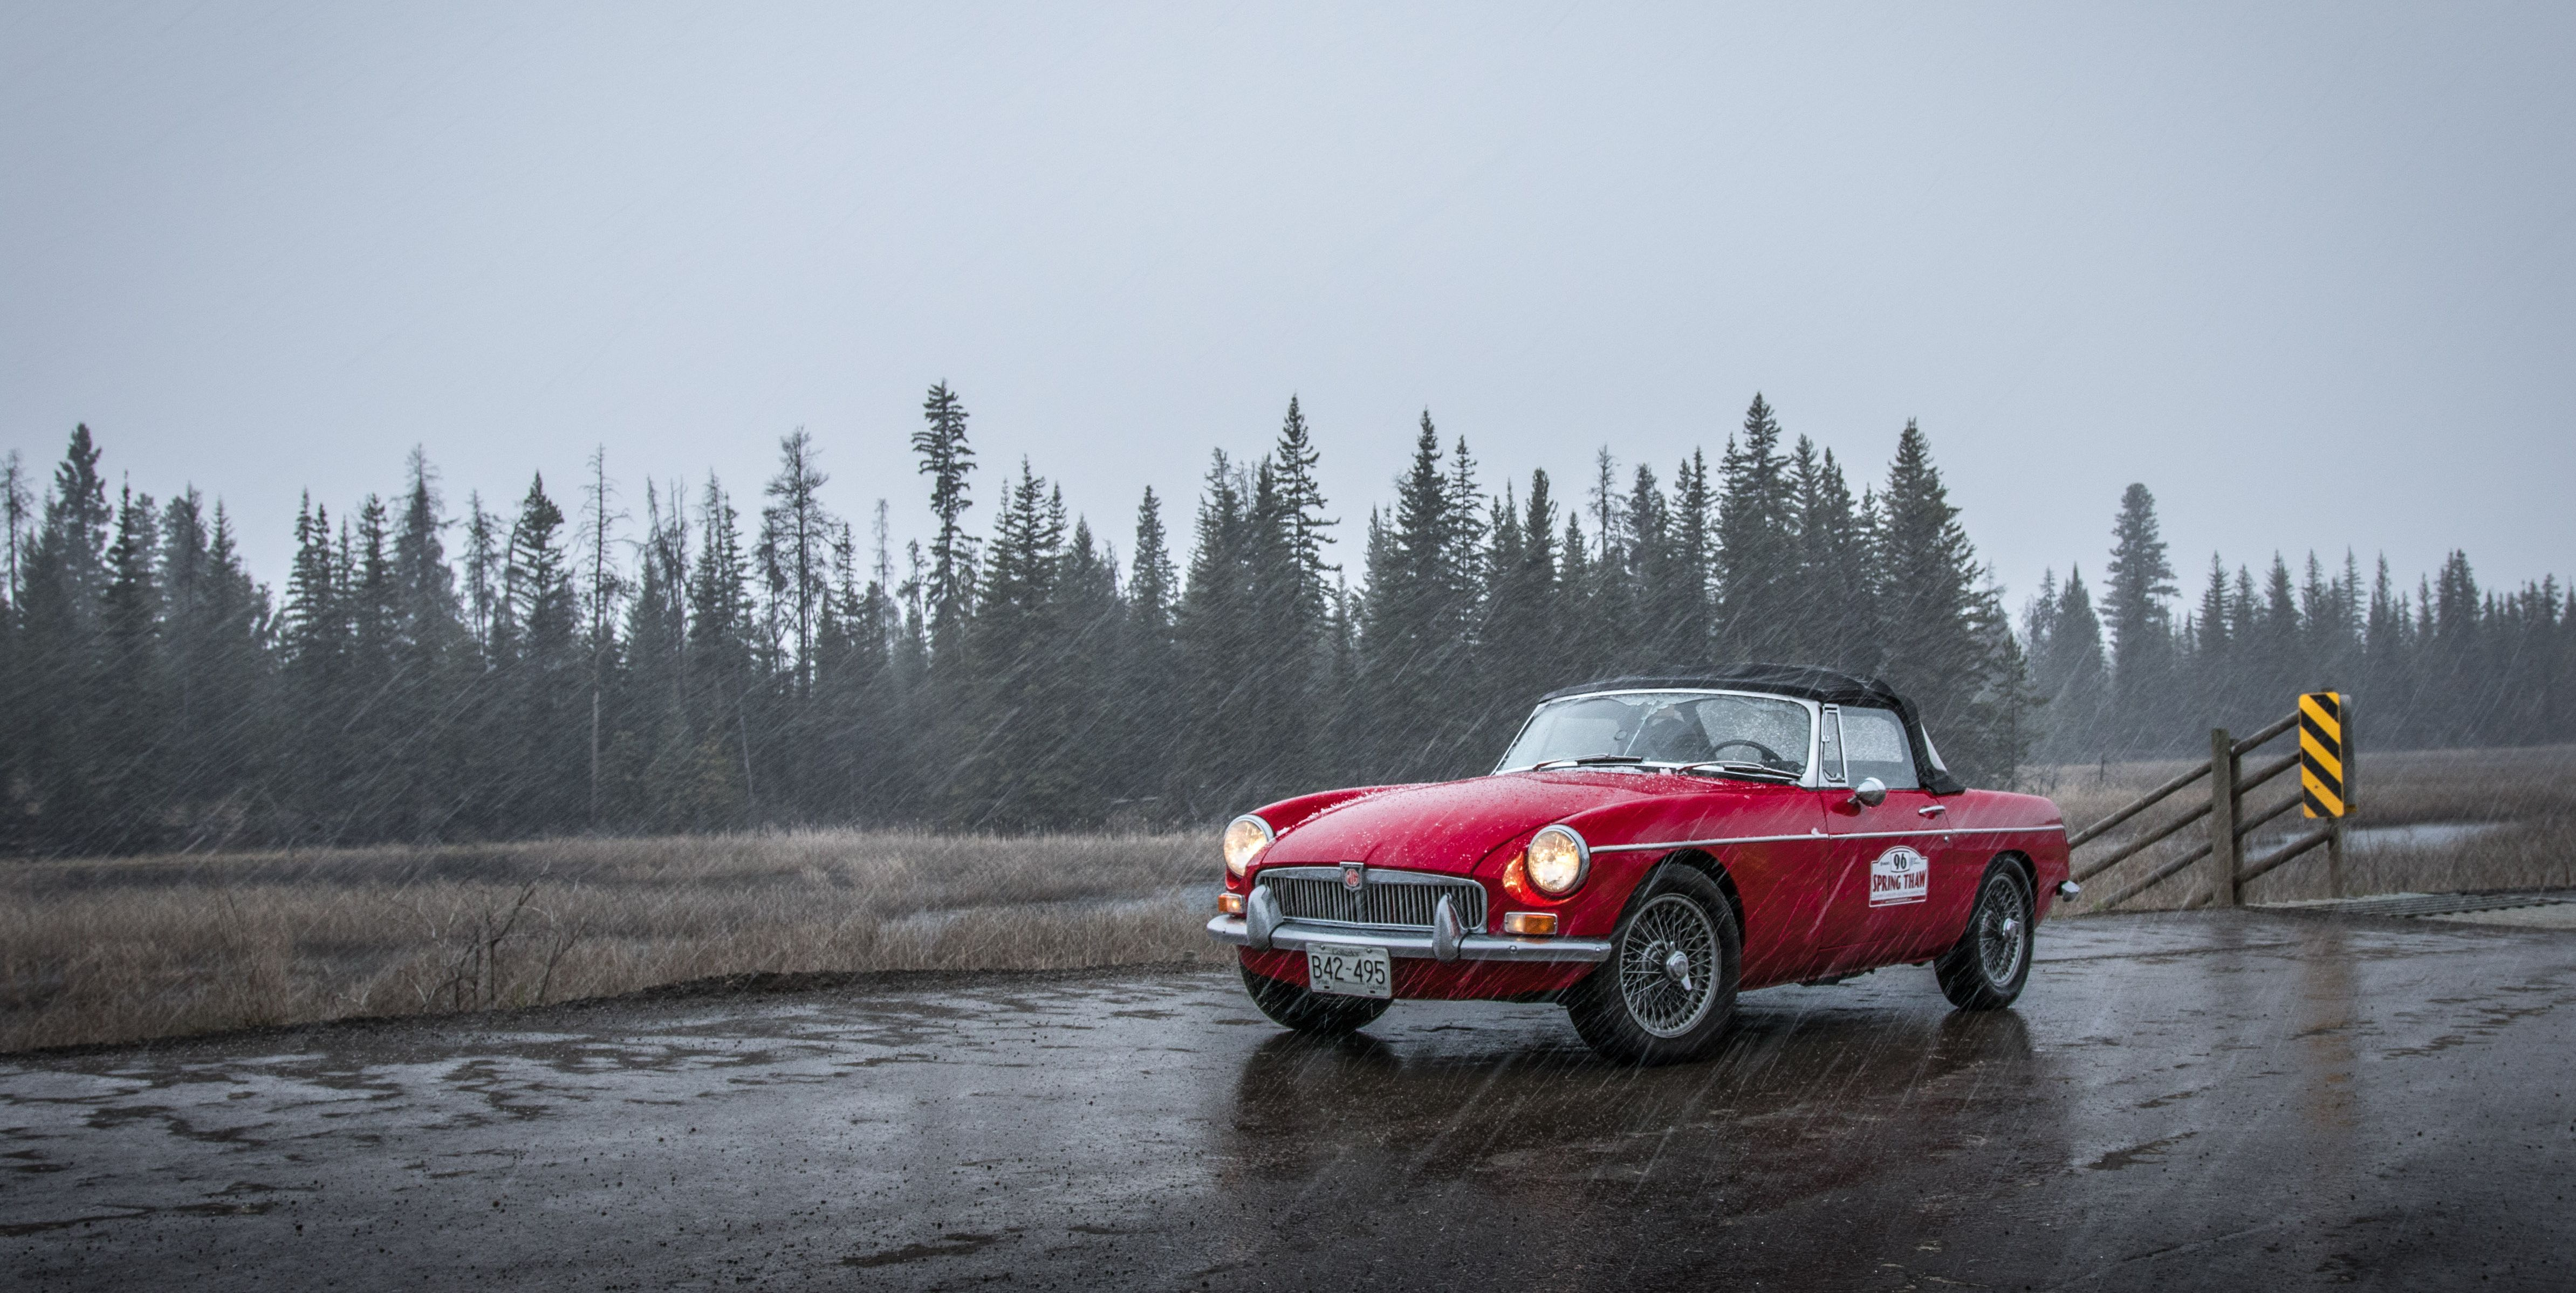 Vintage Cars Are Meant to Be Driven, Weather Be Damned